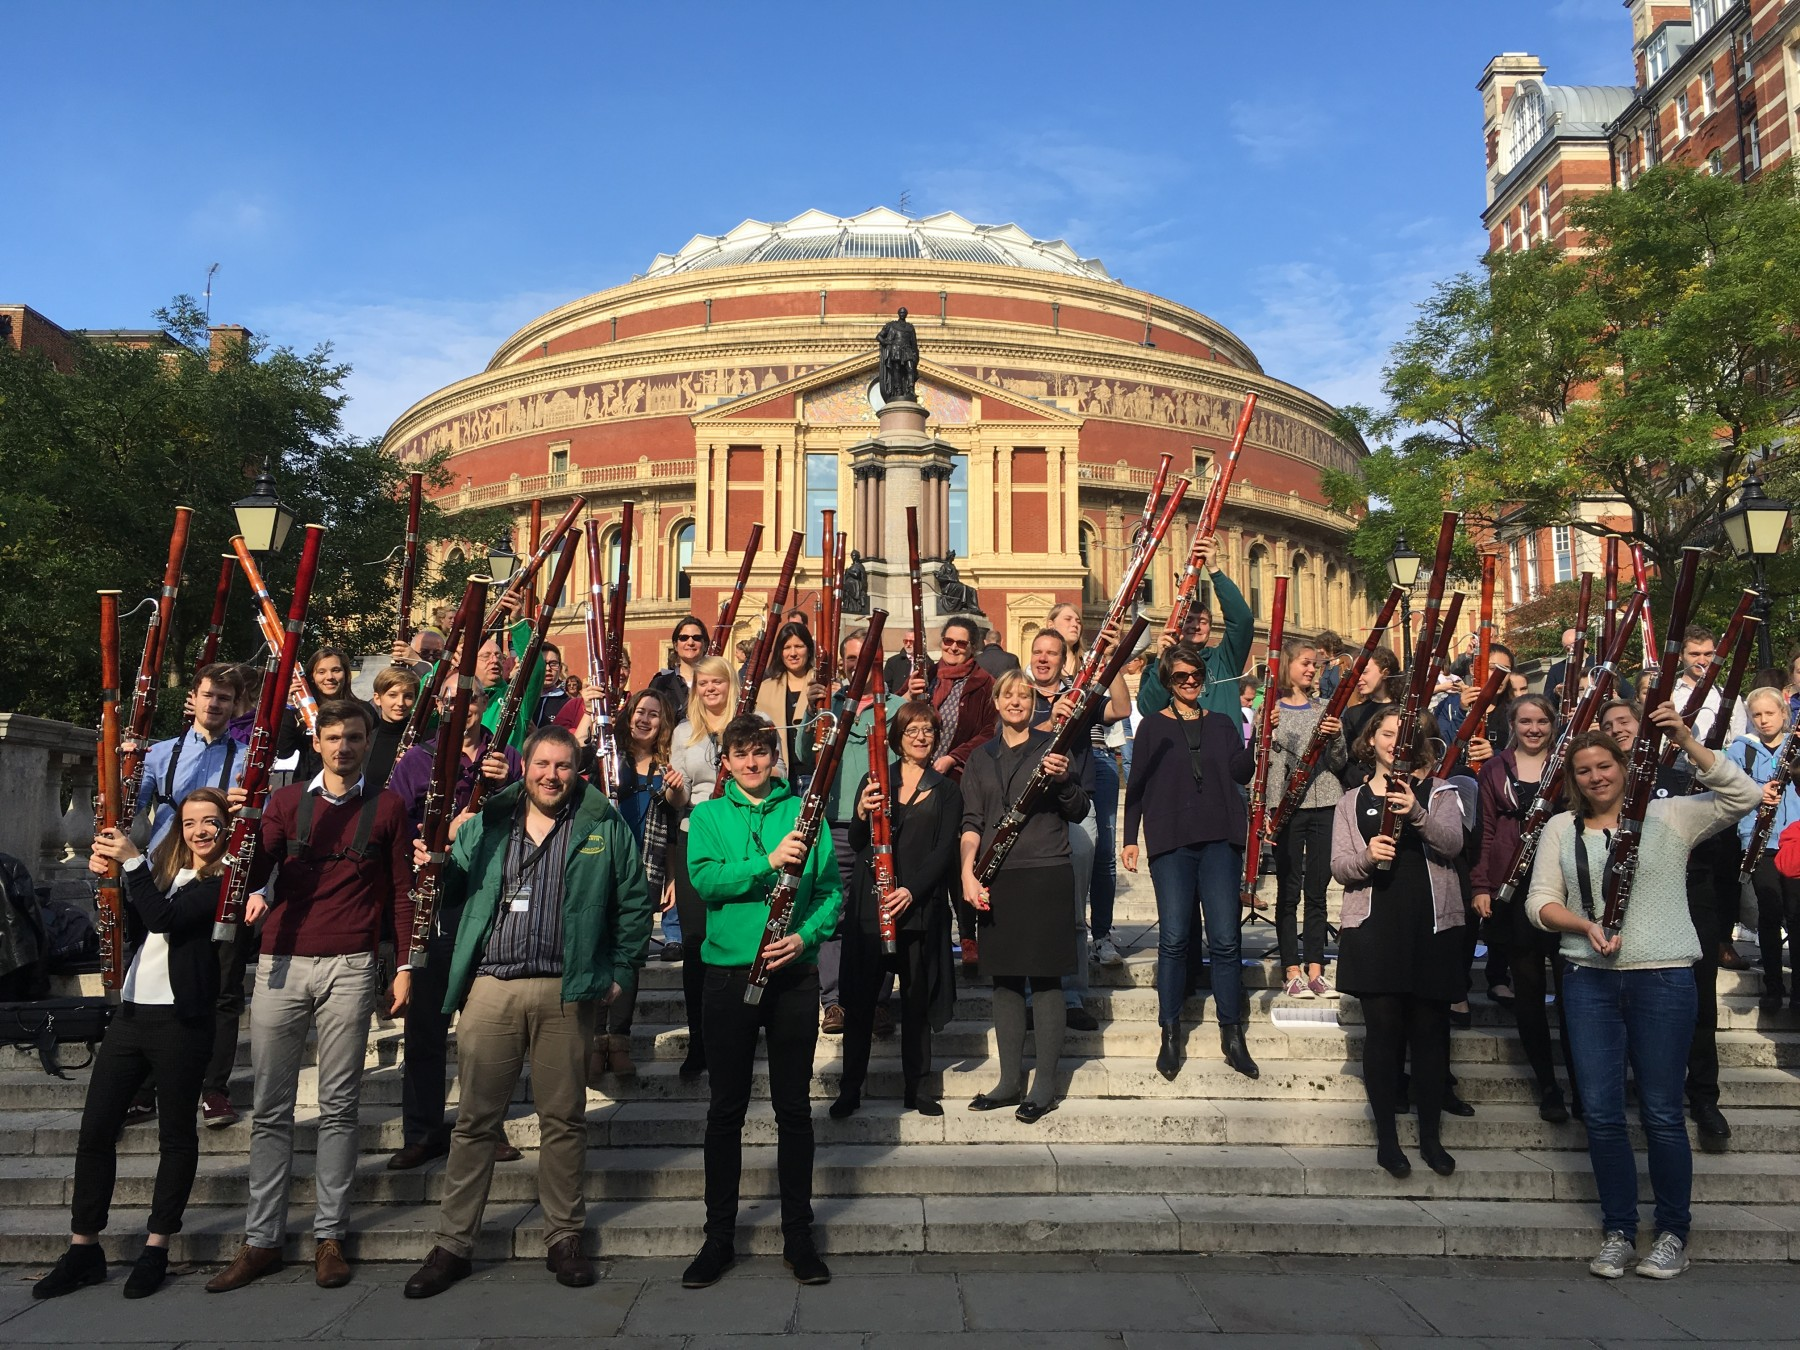 Massed bassoons outside the Royal Albert Hall, London, on International Bassoon Day, 11th October 2015 (photo by John Durham)